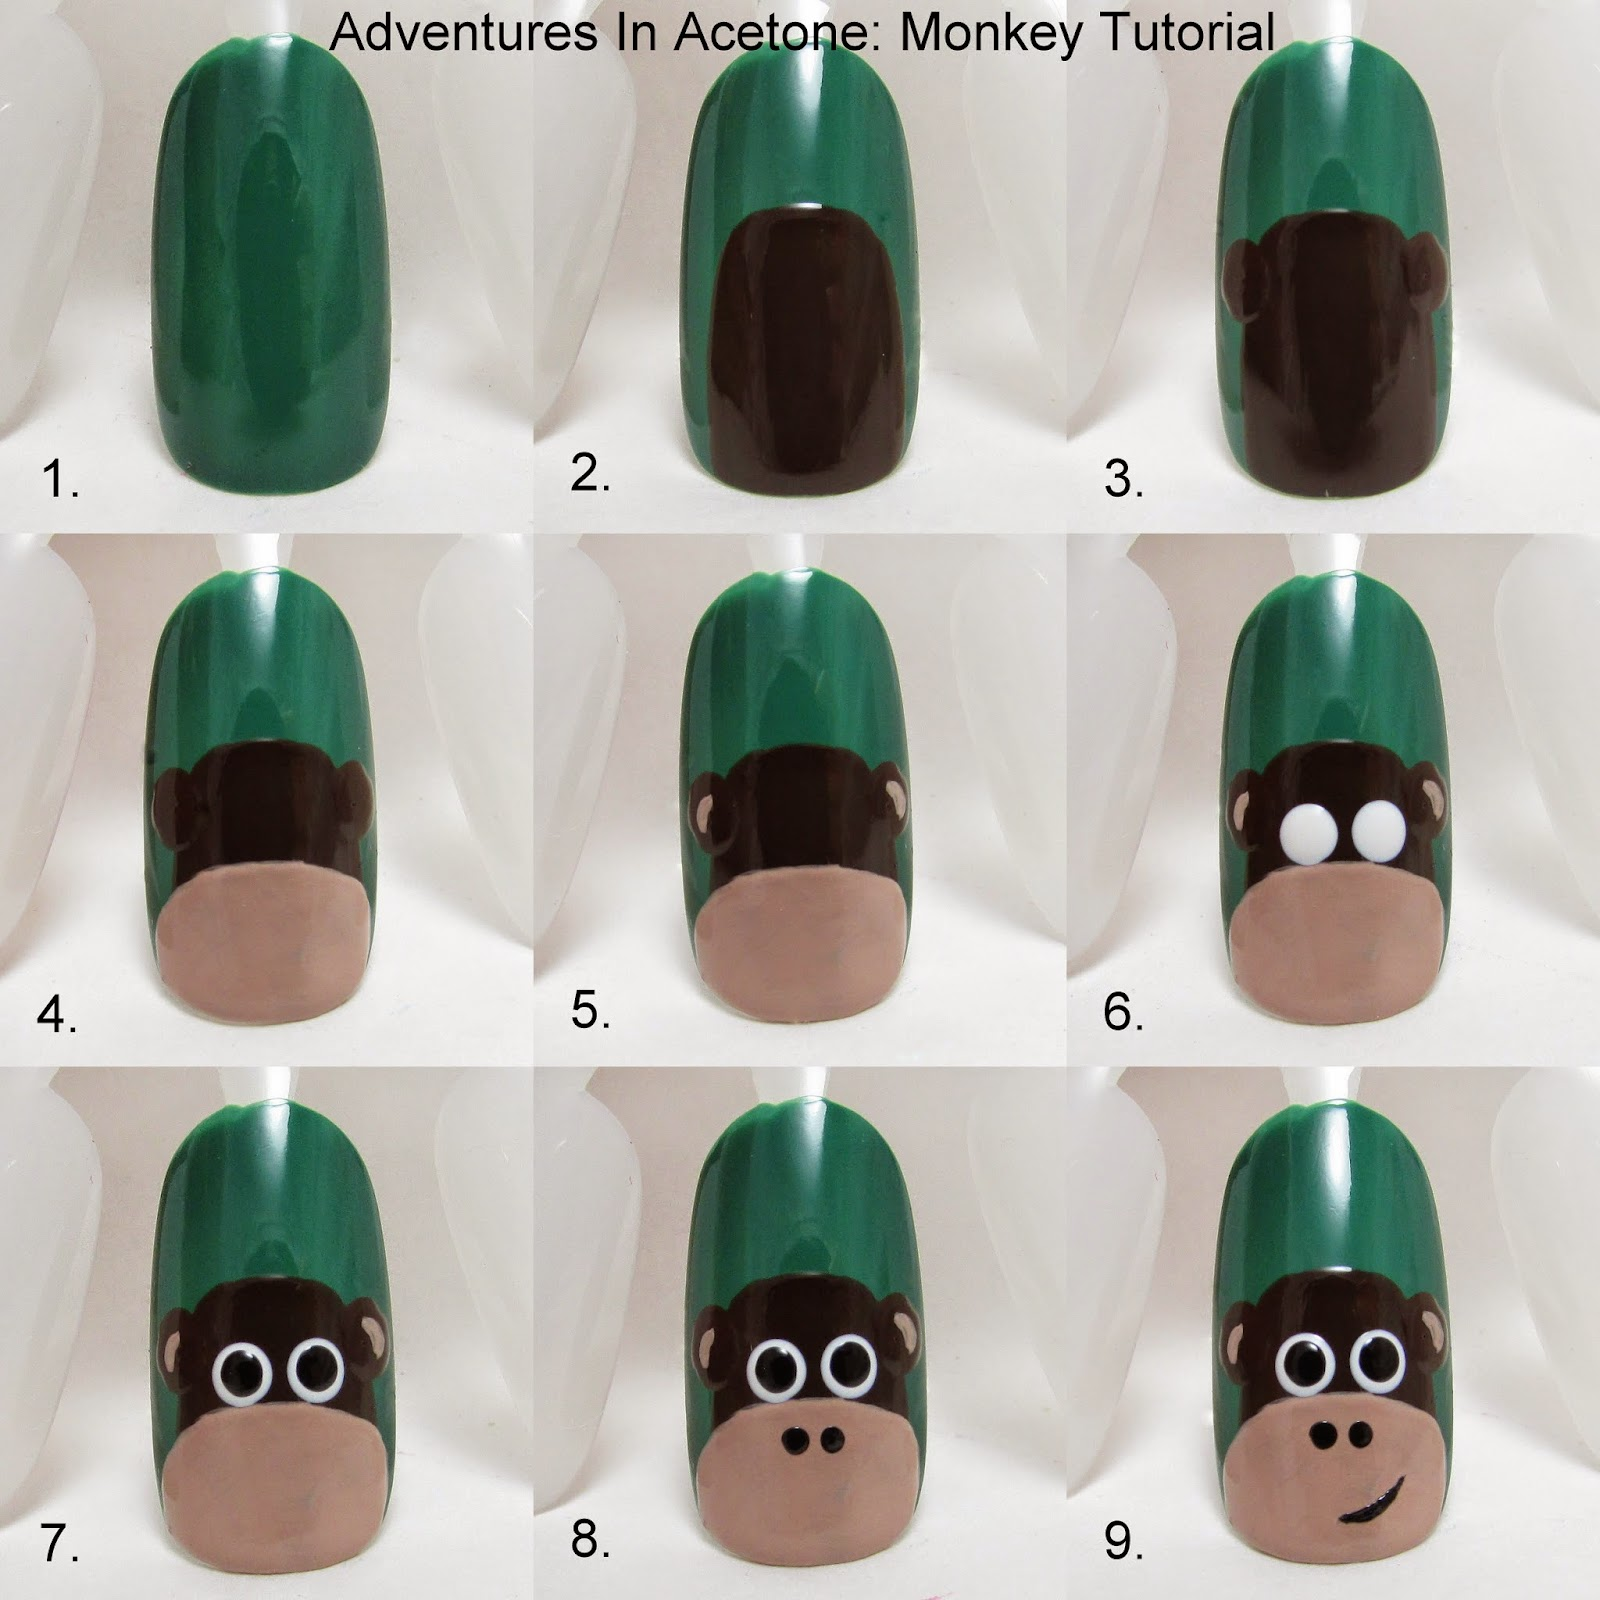 Here is a look at the Zoo Nails where this cute monkey came from: